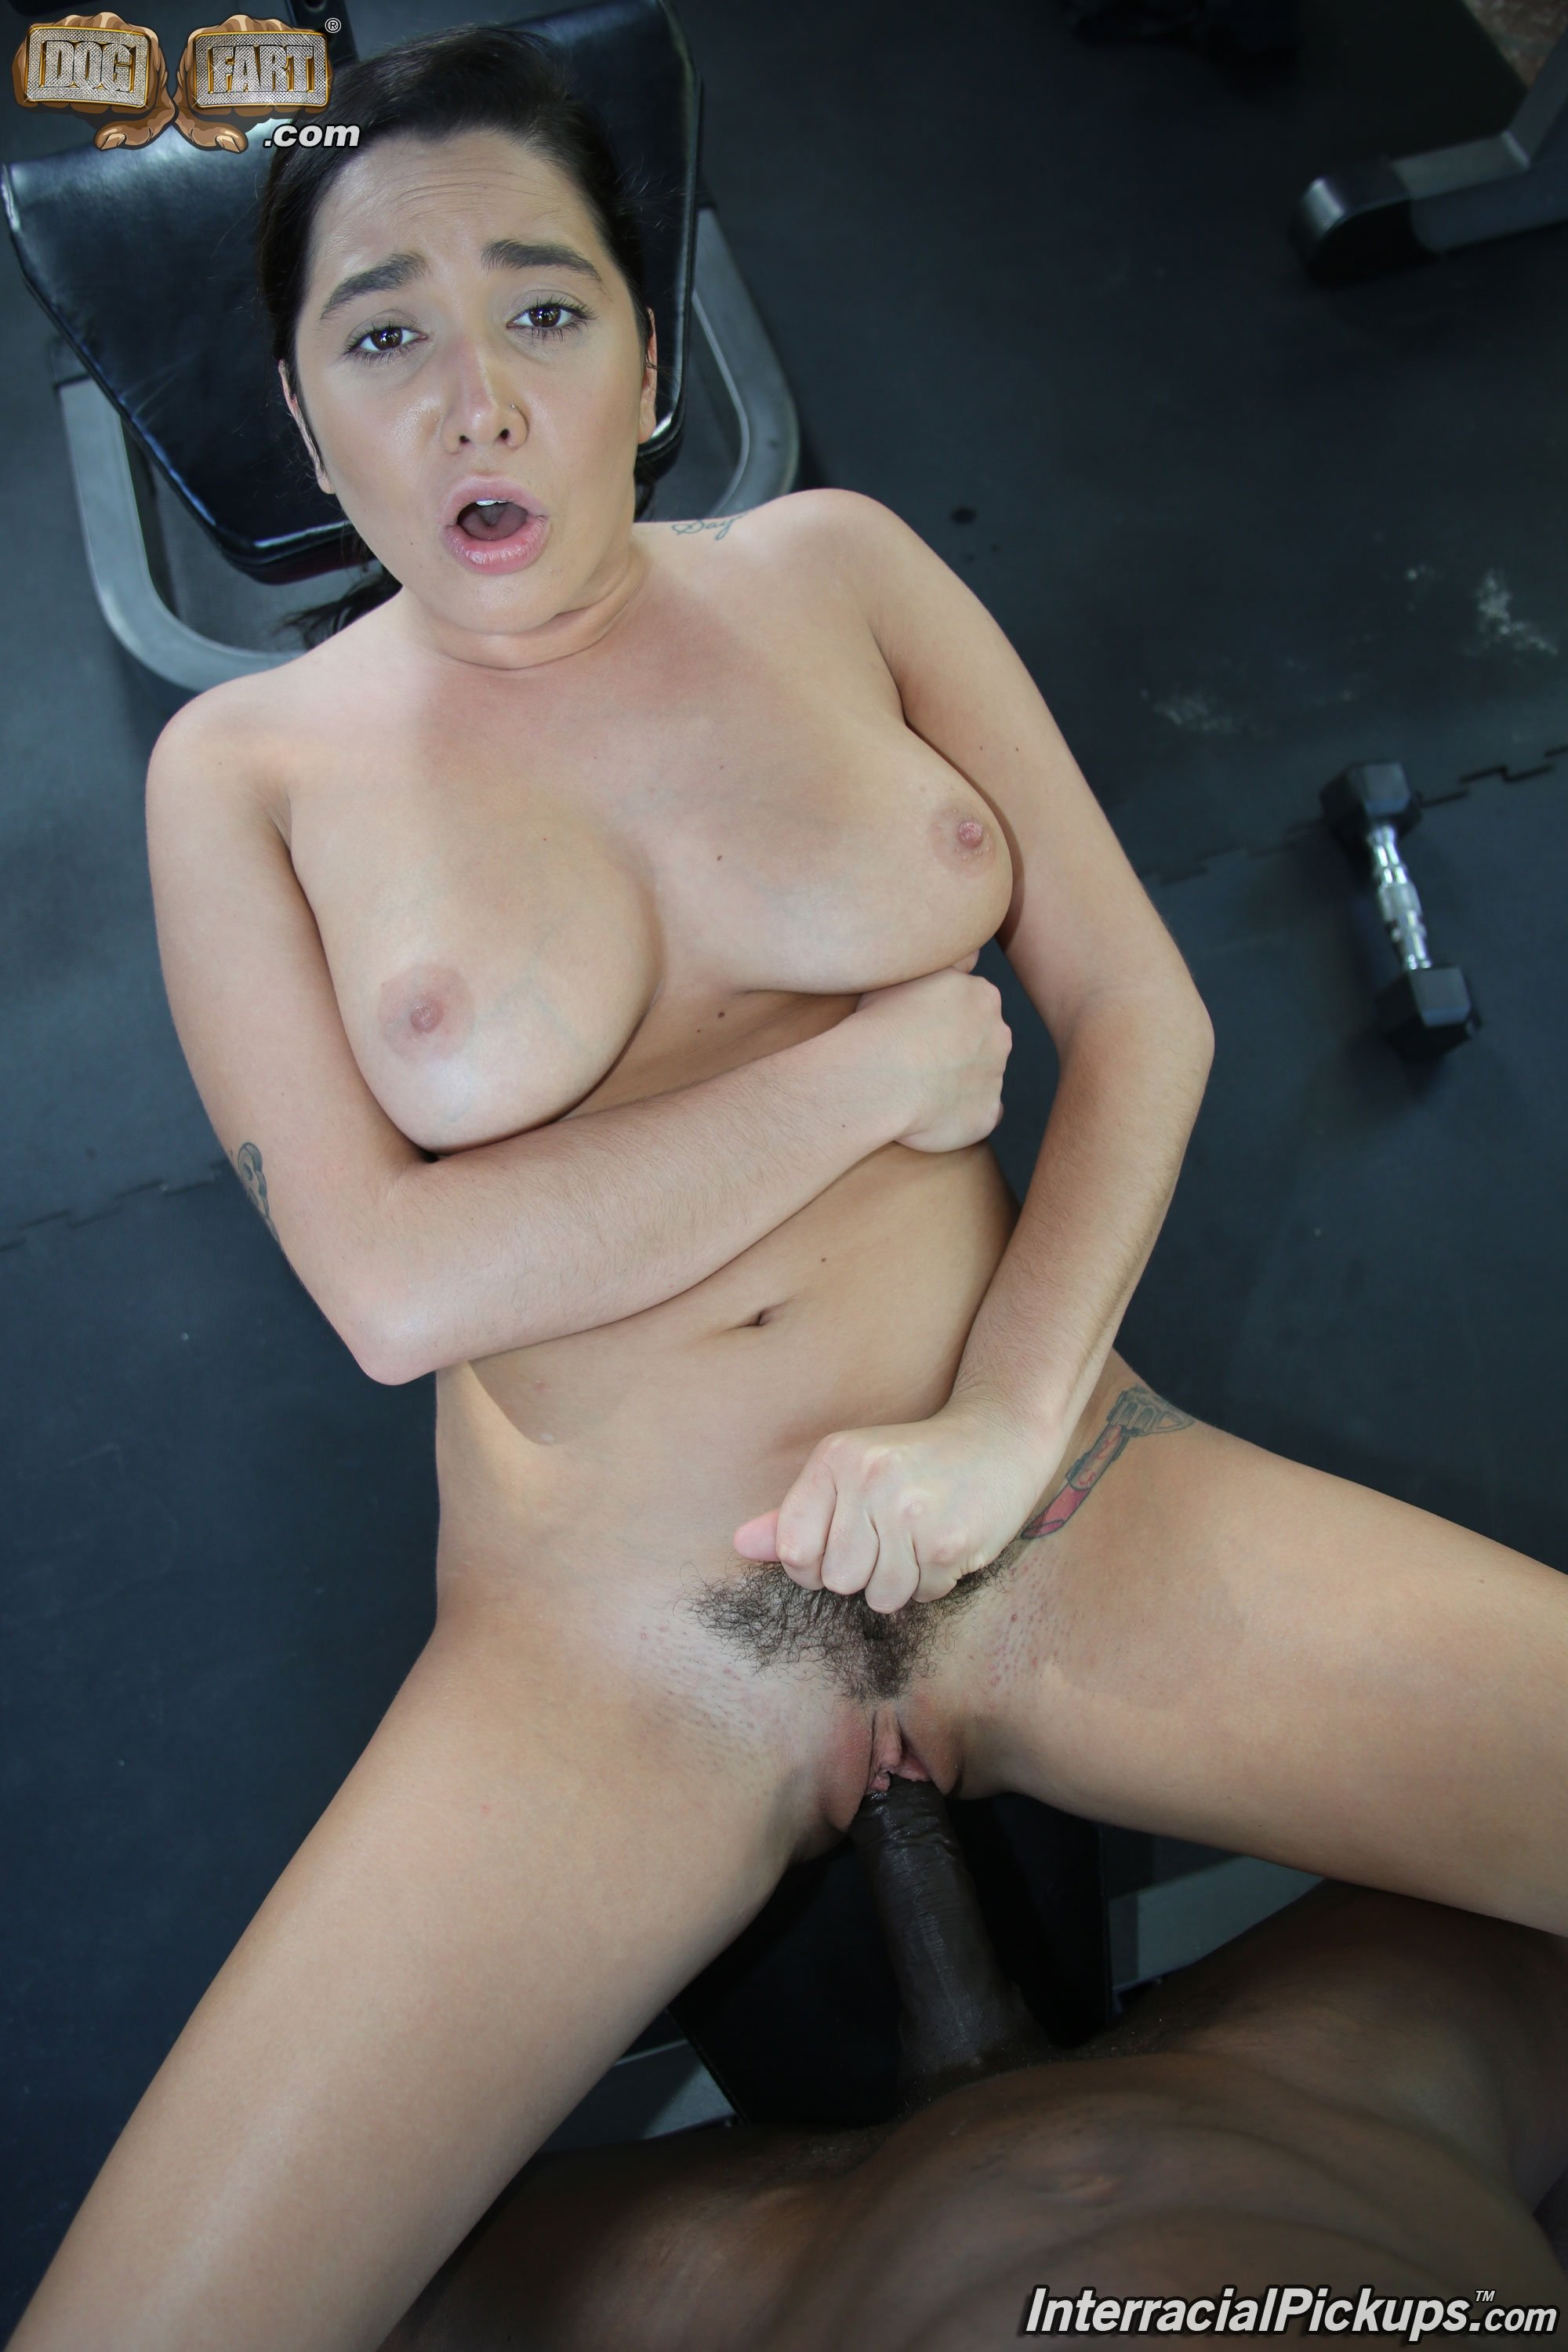 Xxx bbbw big fat homemade porn